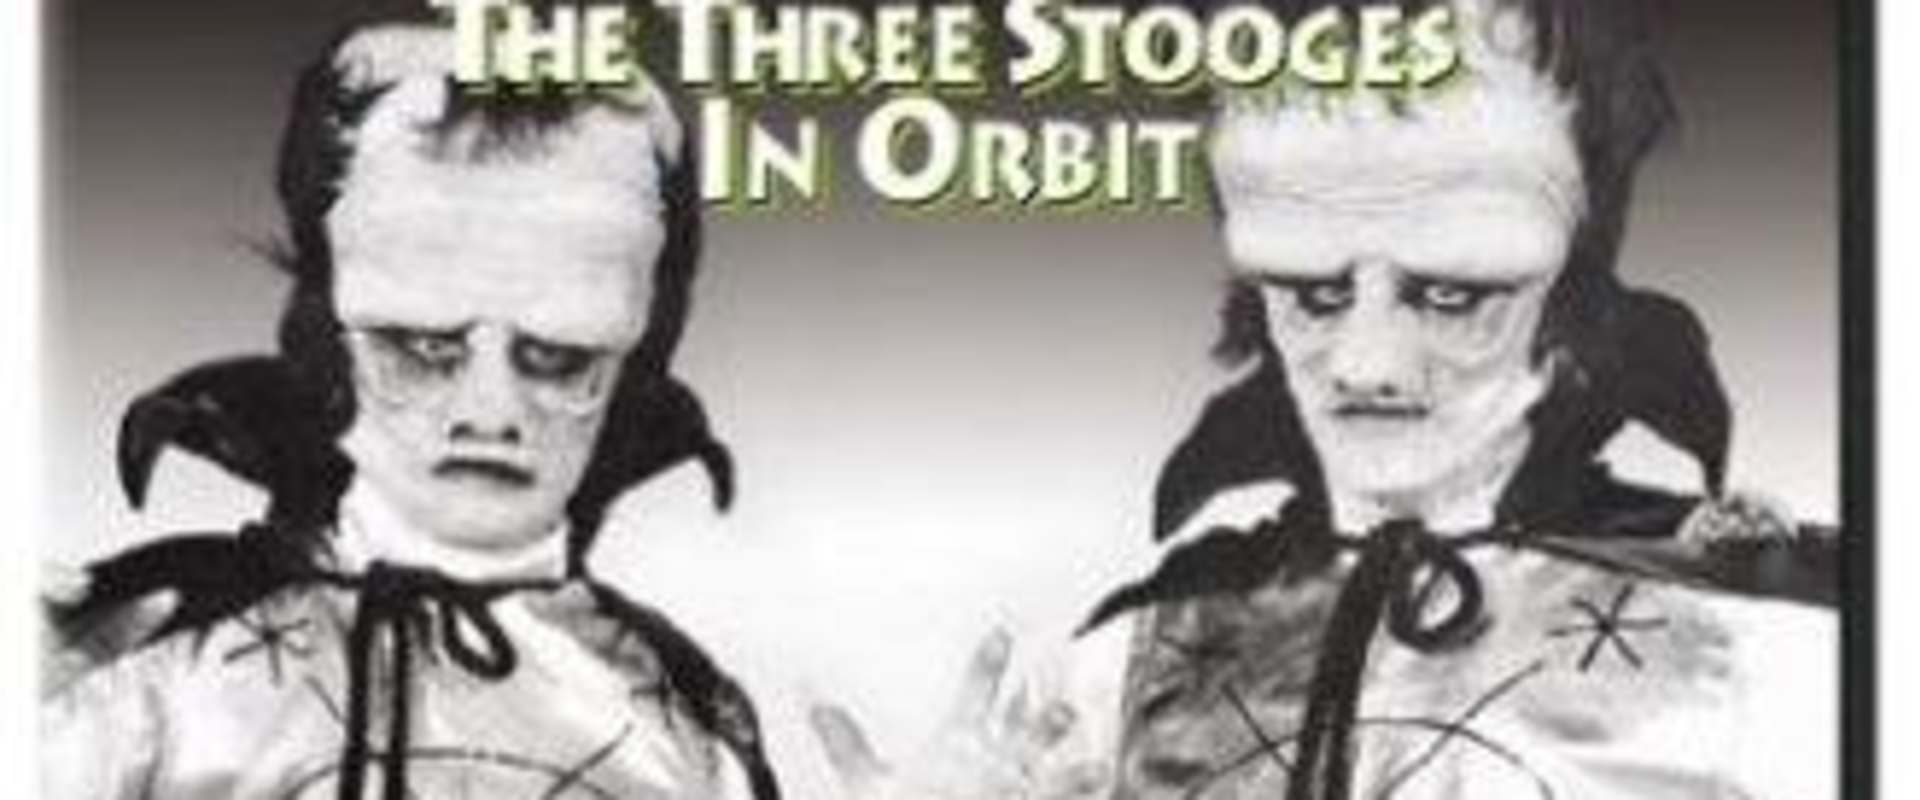 The Three Stooges in Orbit background 2